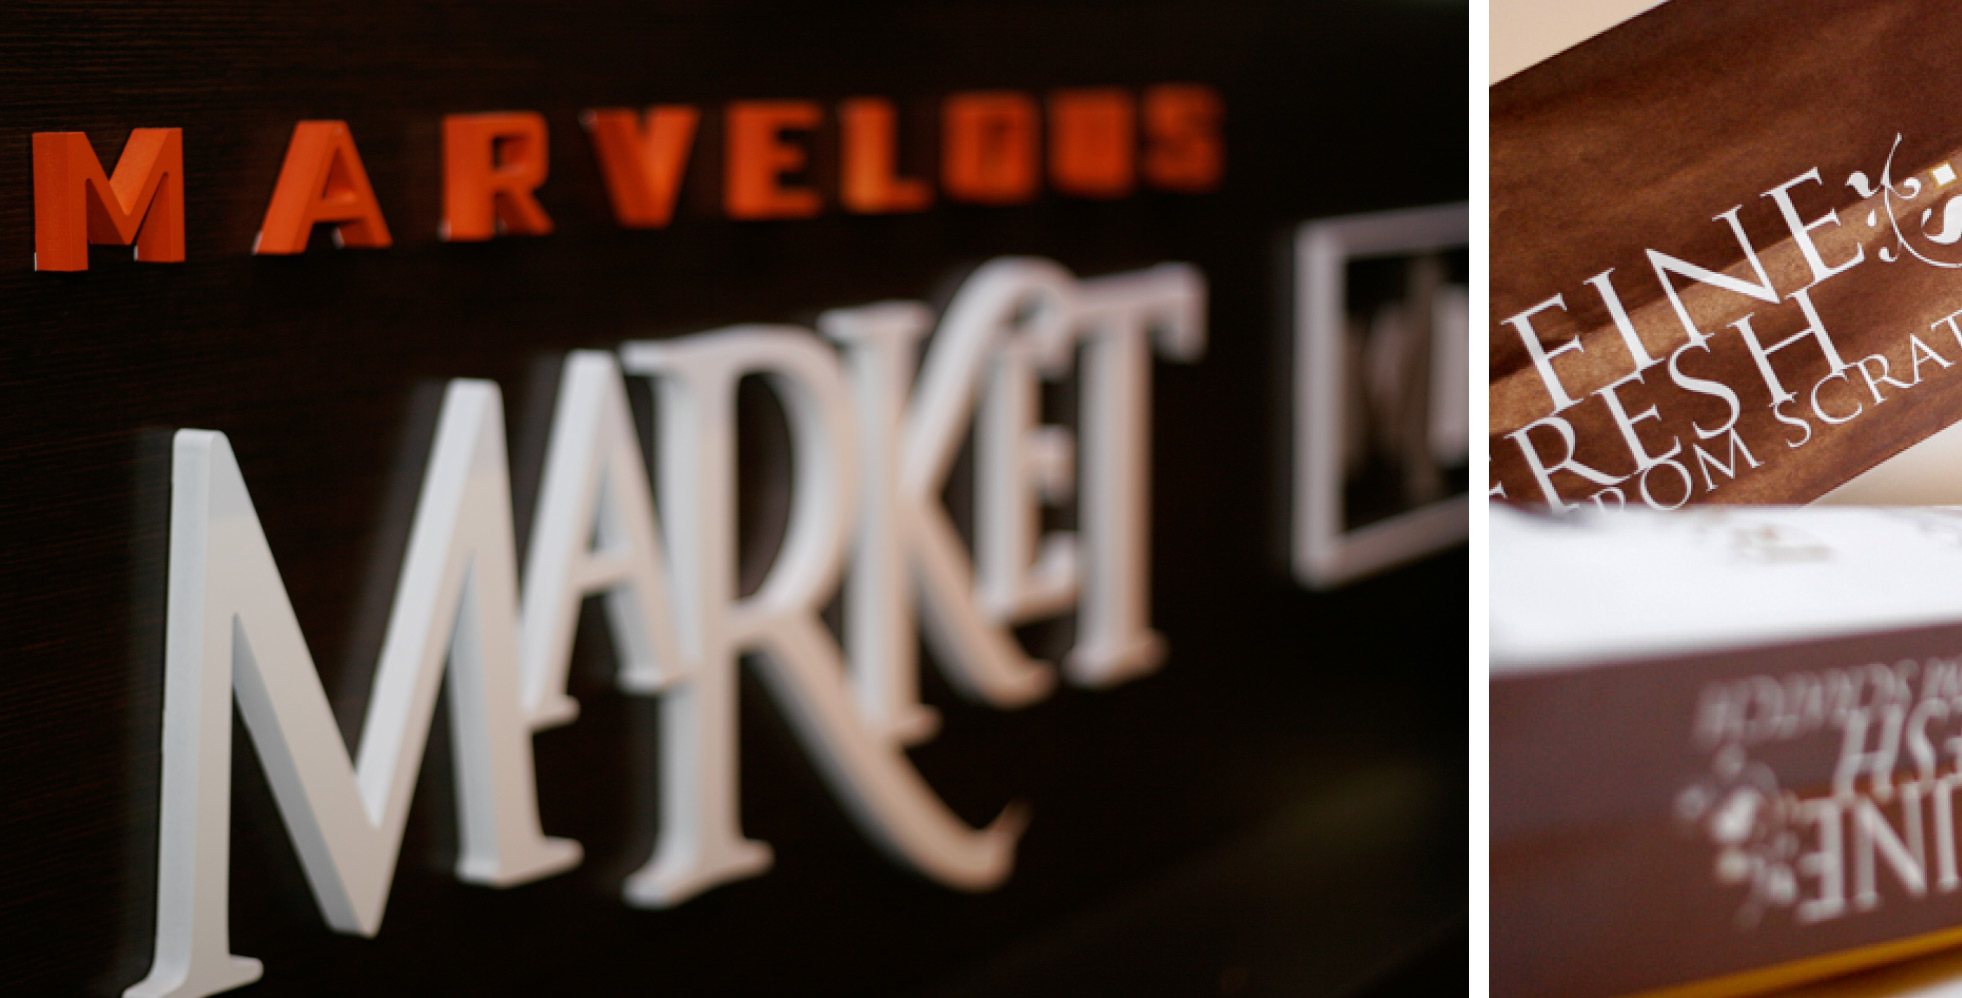 Maravelous Market Bakery Signage Design